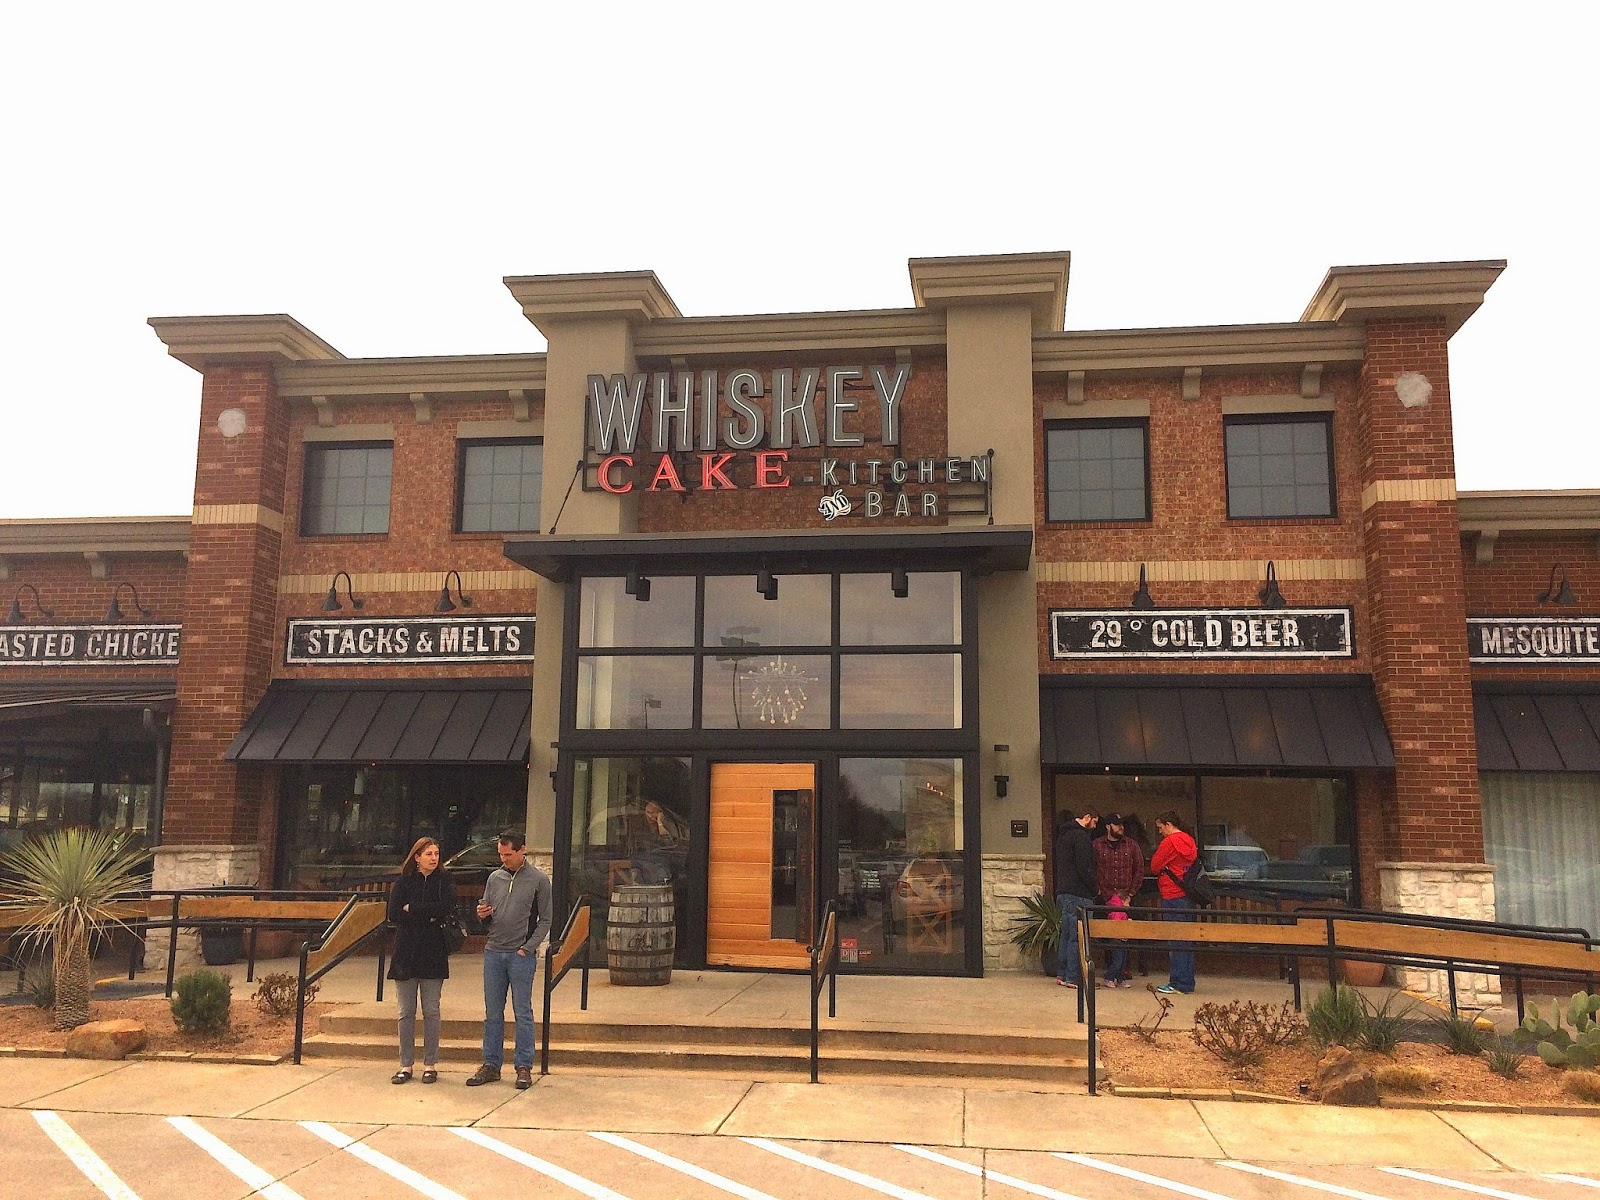 Whiskey Cake Kitchen Bar Is One Of My Favorite Restaurants In Collin County Since Wife Also A Fan She Always Willing To Dine There Any Time